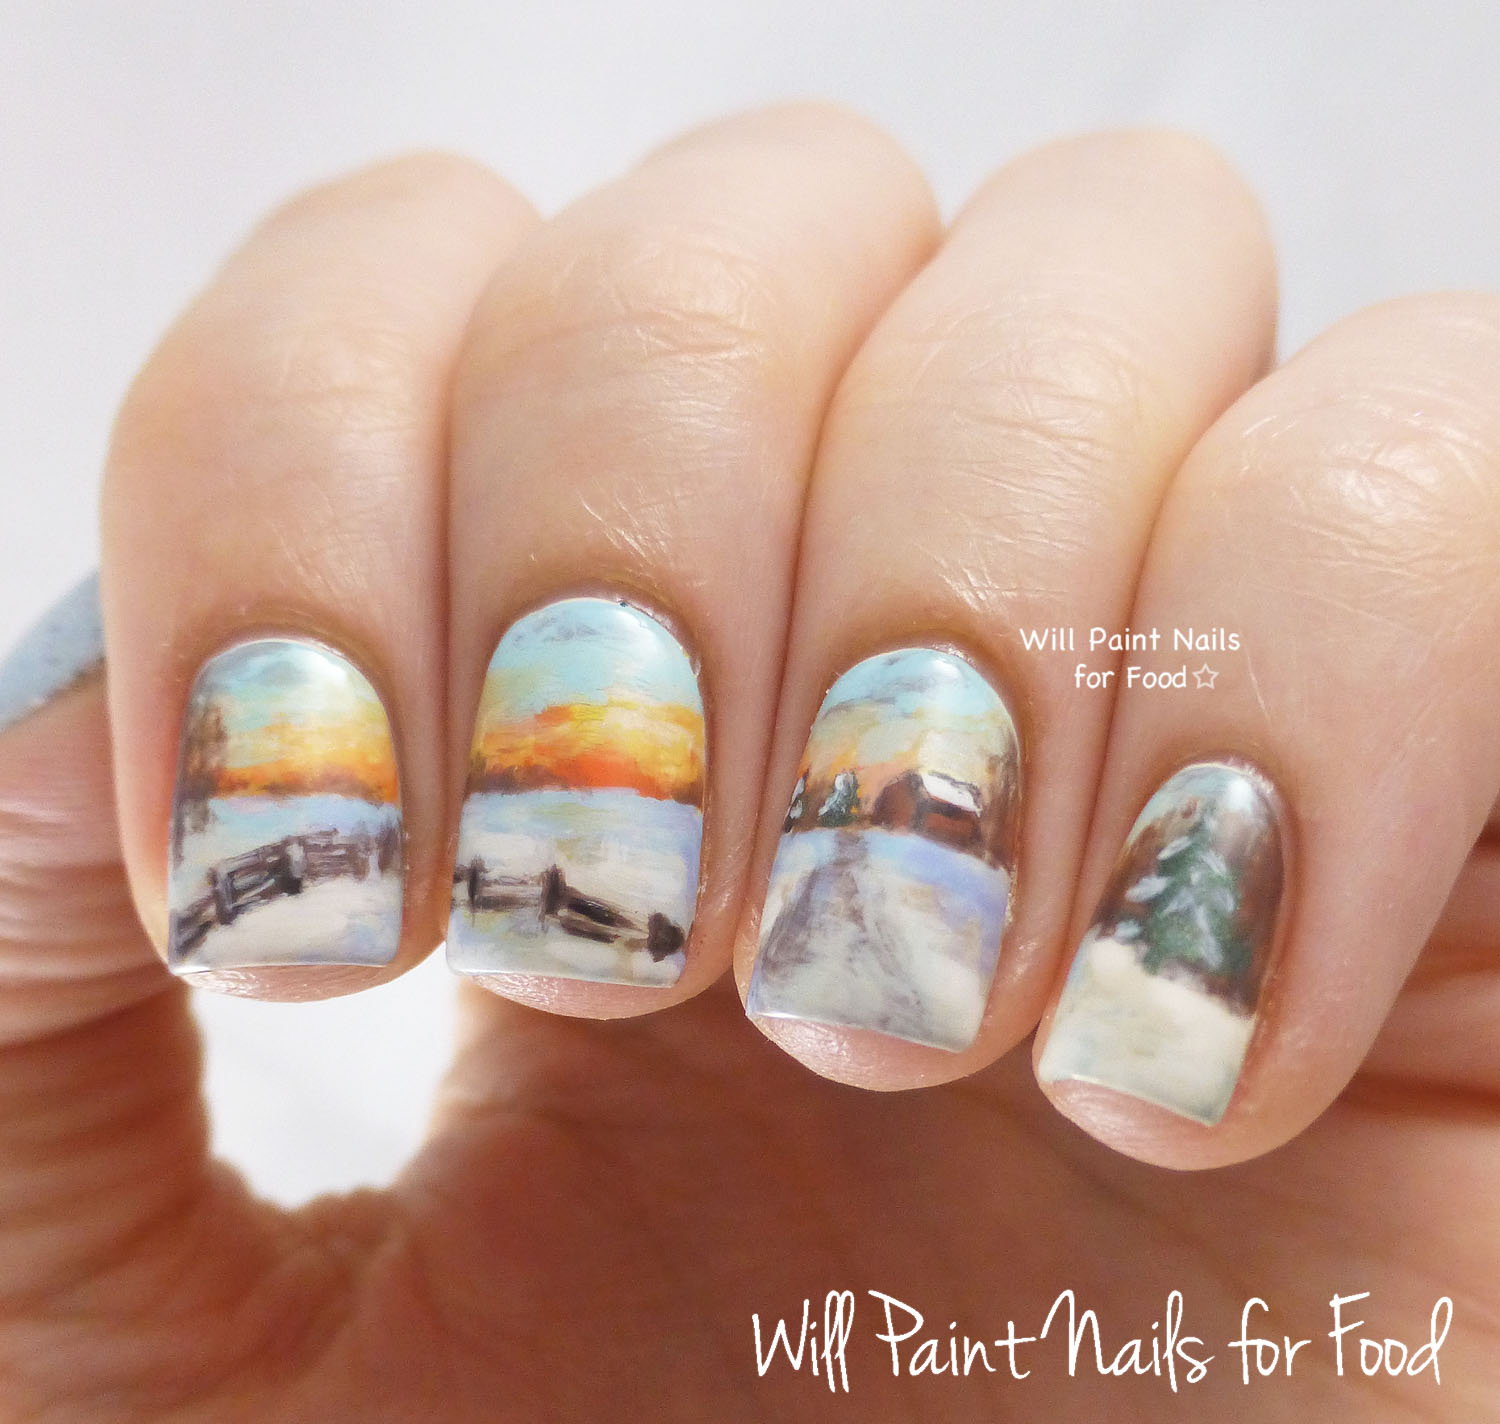 marvellous Thus you see they check our luxury, they force us to connect  ourselves especially inspiration article - 26 Fabulous Country Nail Art – Ledufa.com